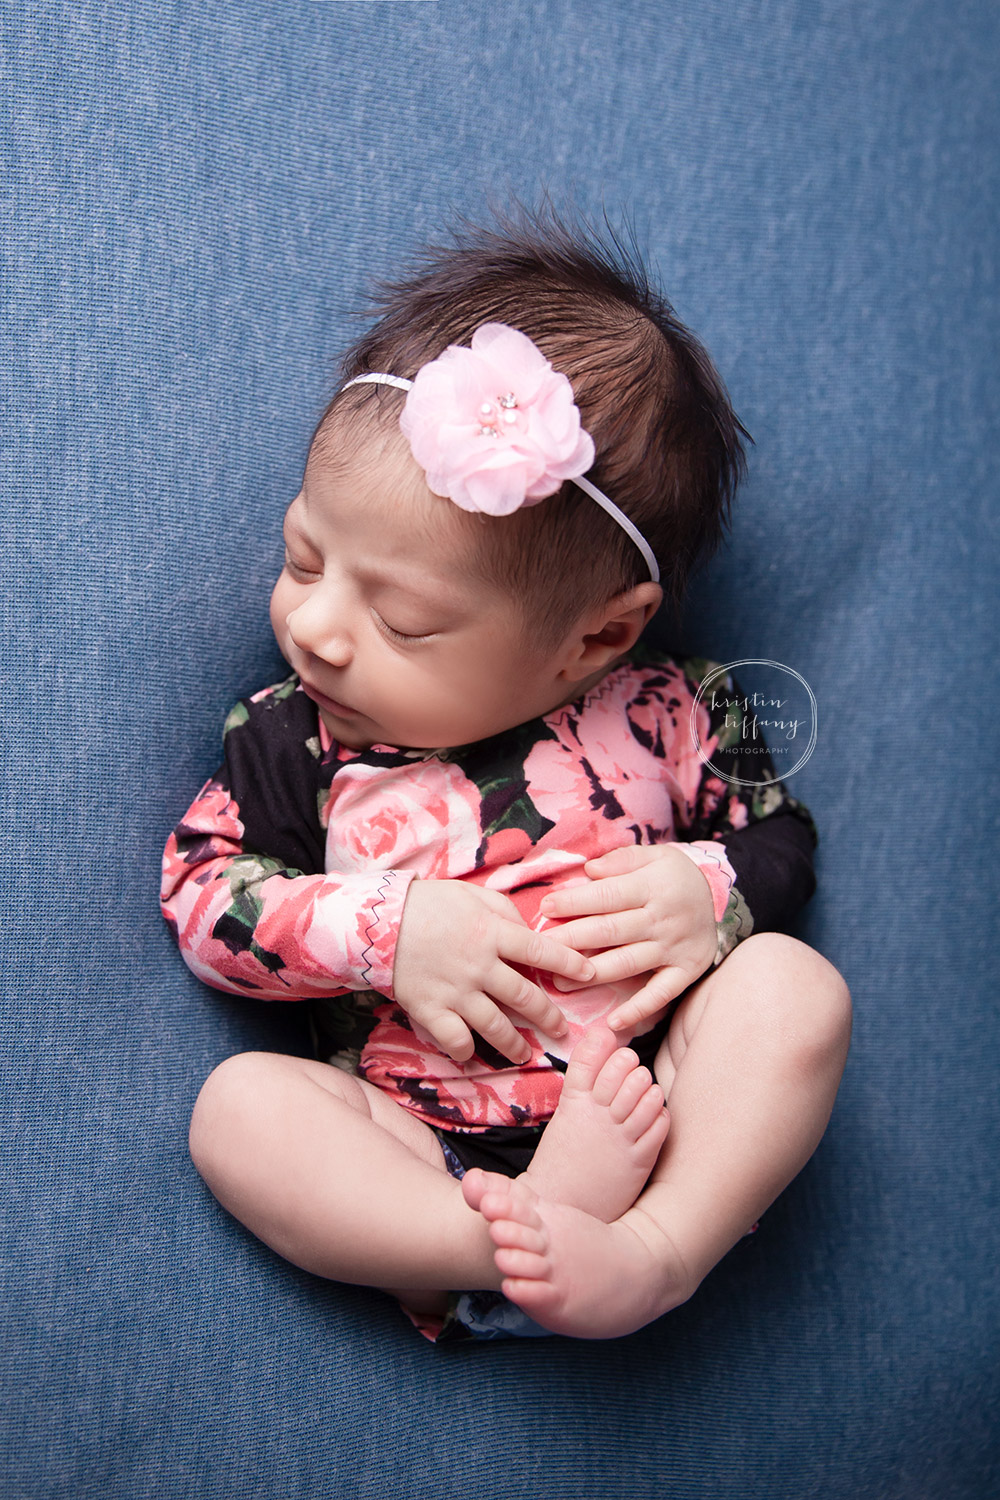 a newborn photo of a baby girl in a floral romper